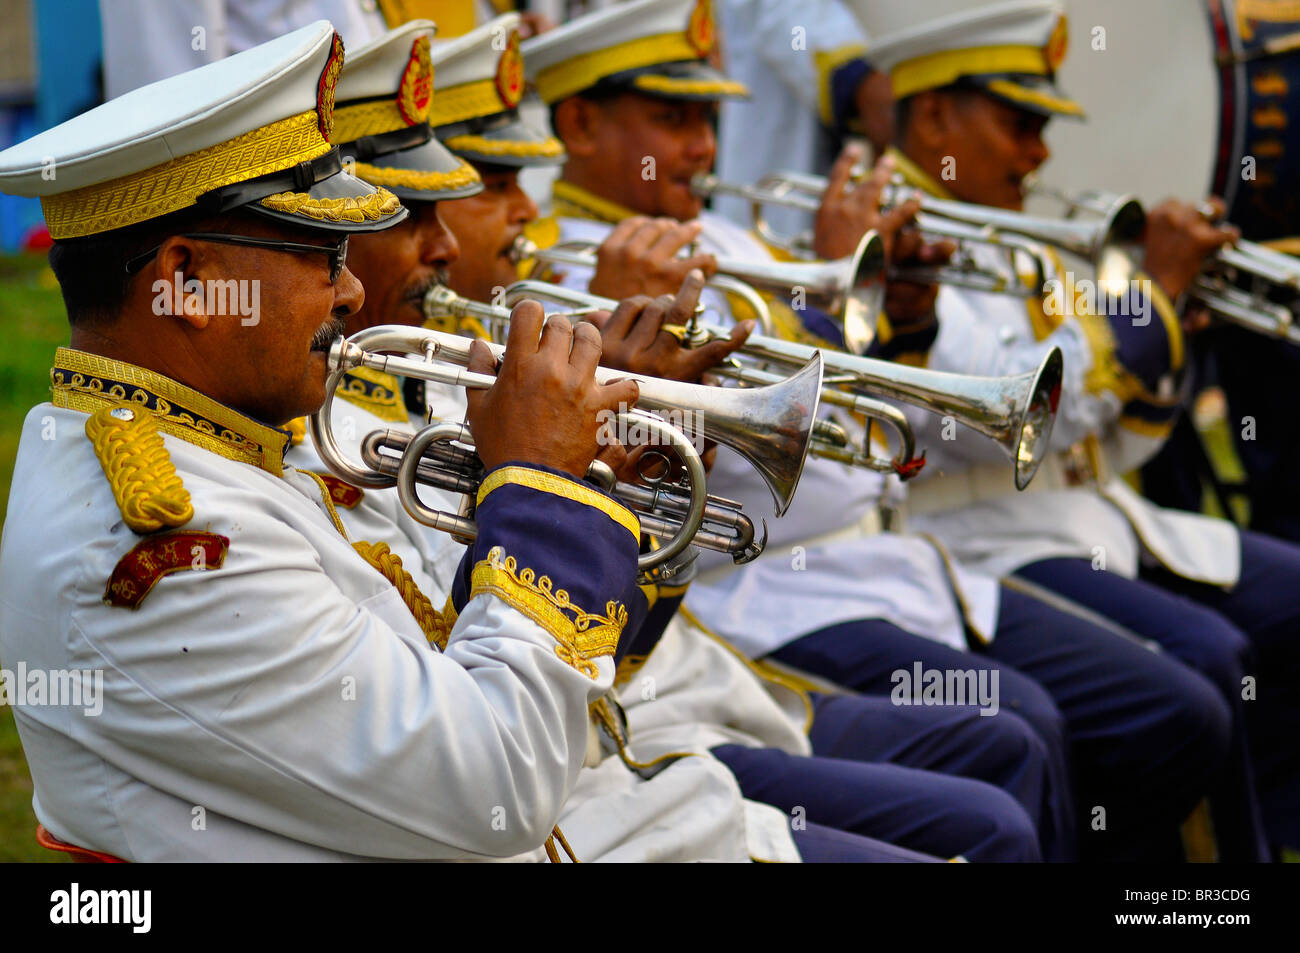 a-brass-band-in-attendance-with-shining-instruments-and-full-dress-BR3CDG.jpg